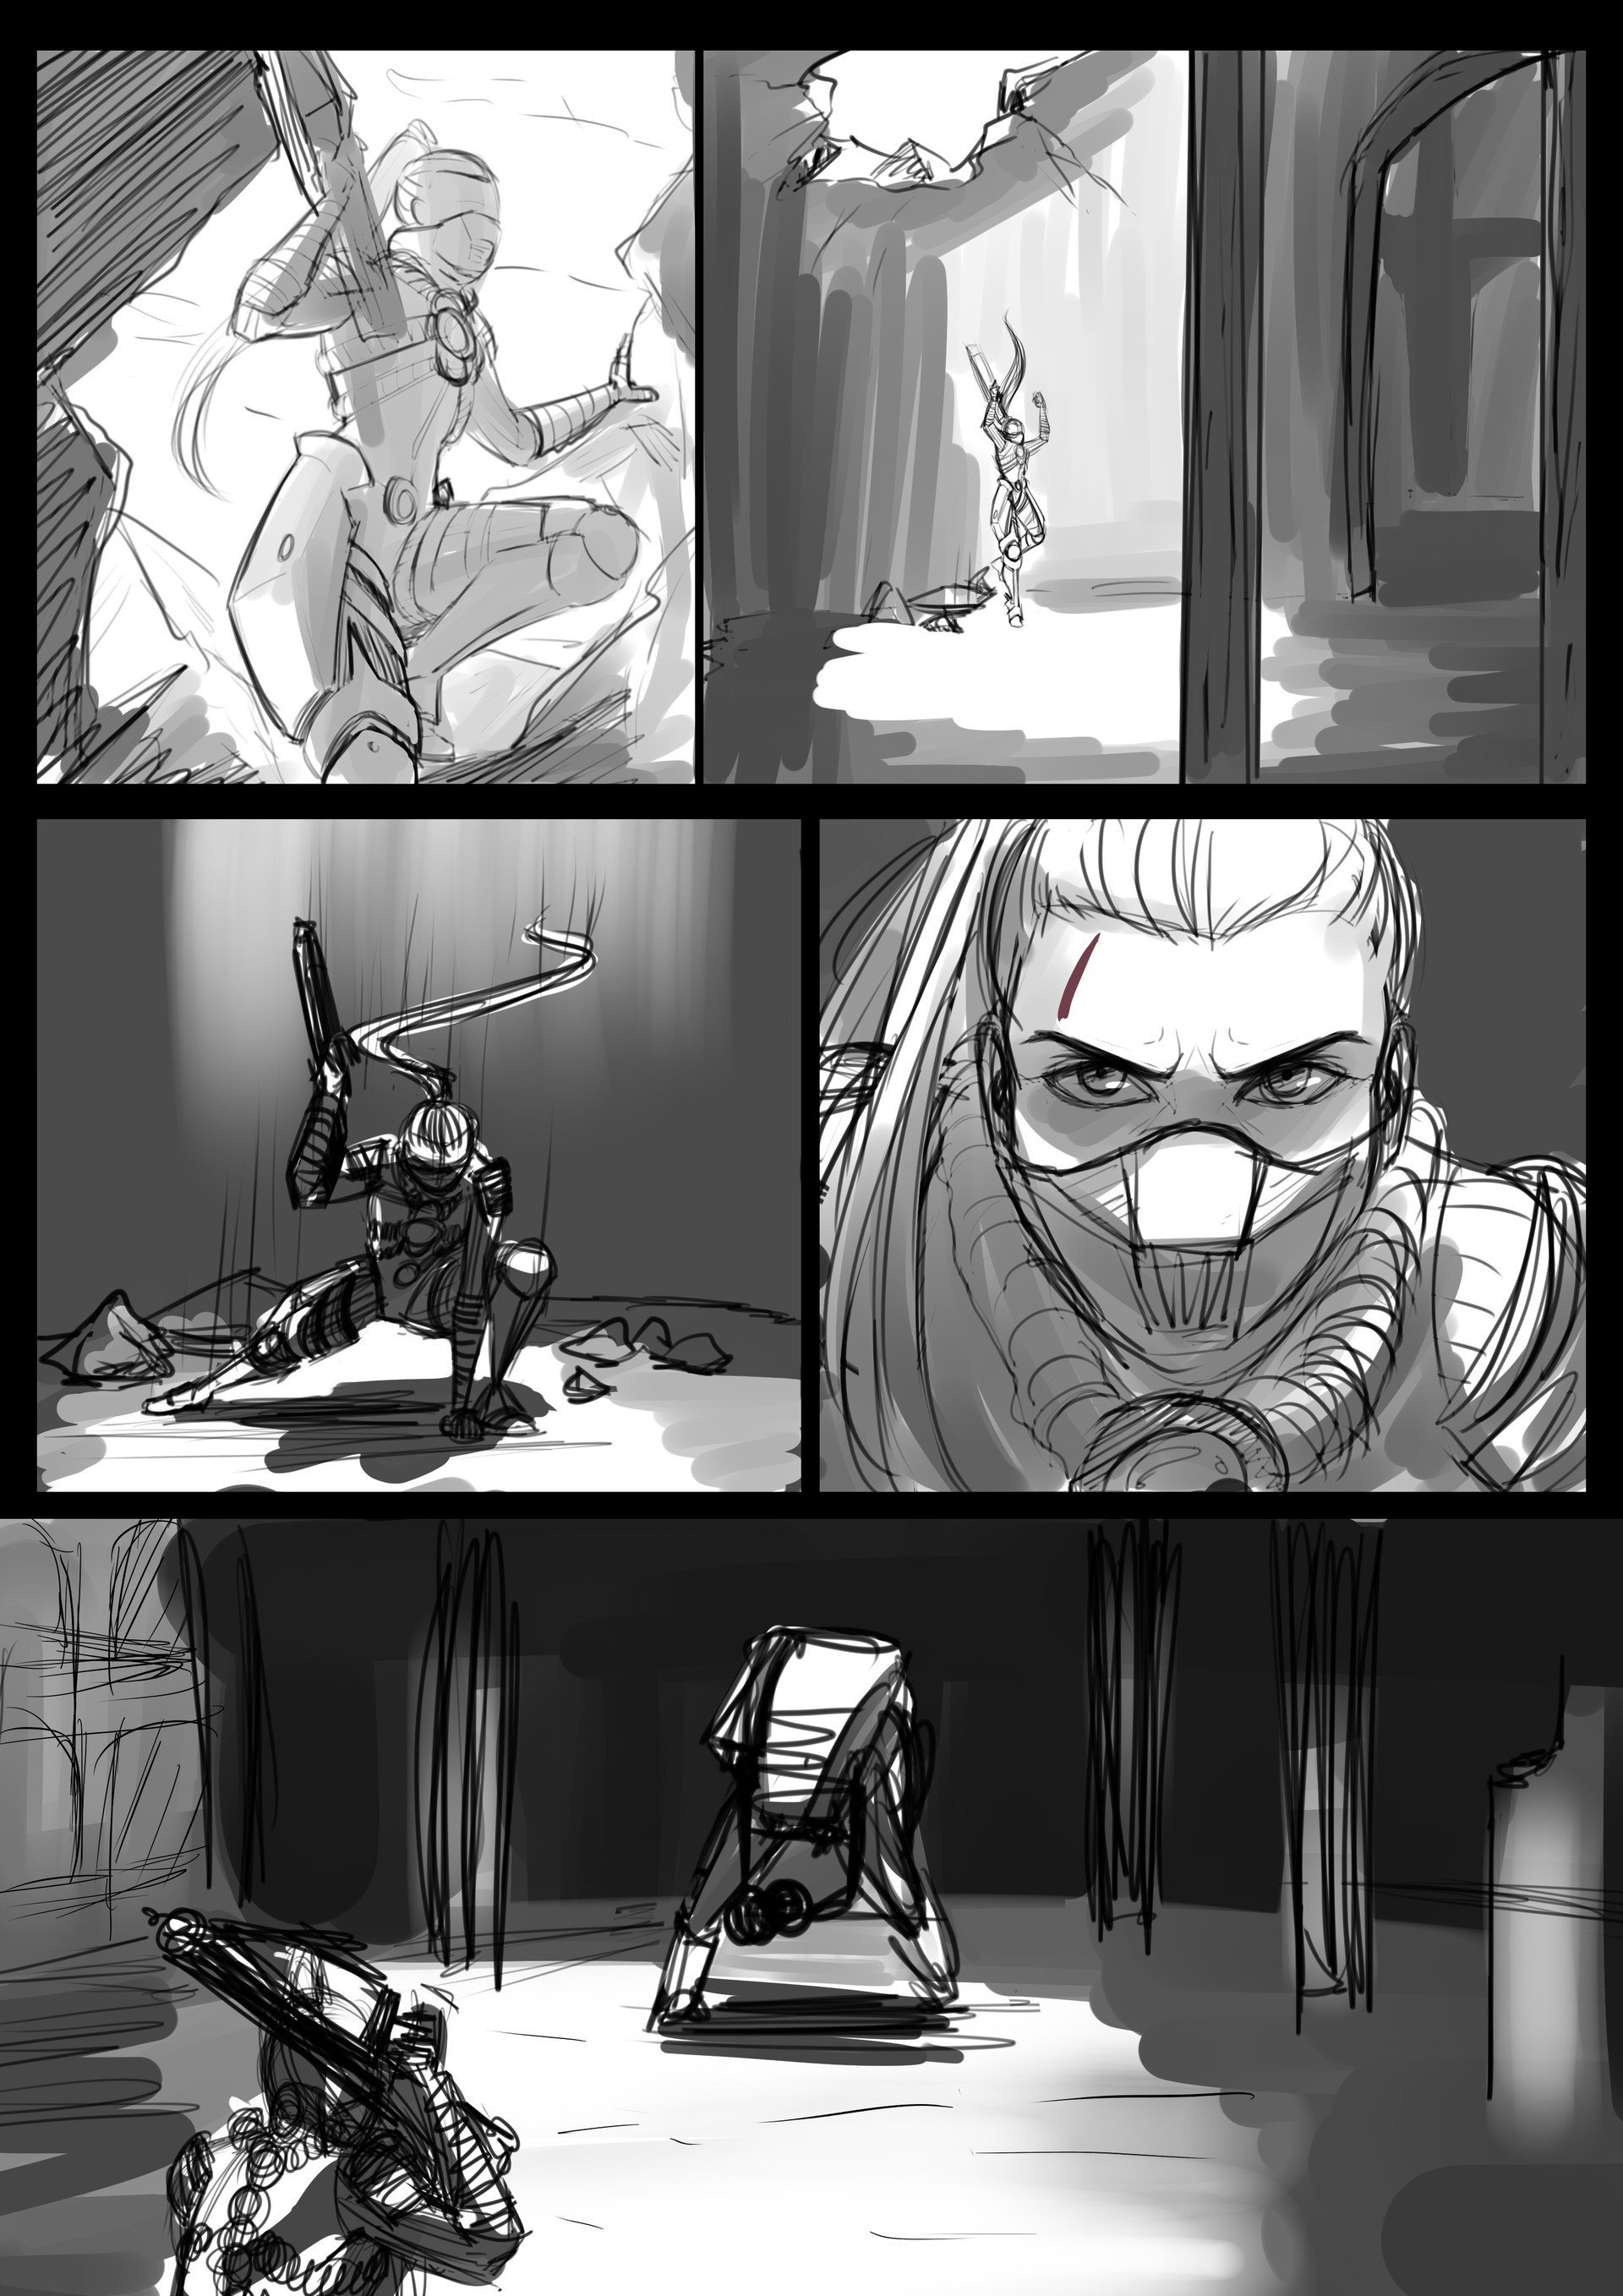 Page 1 - sketch